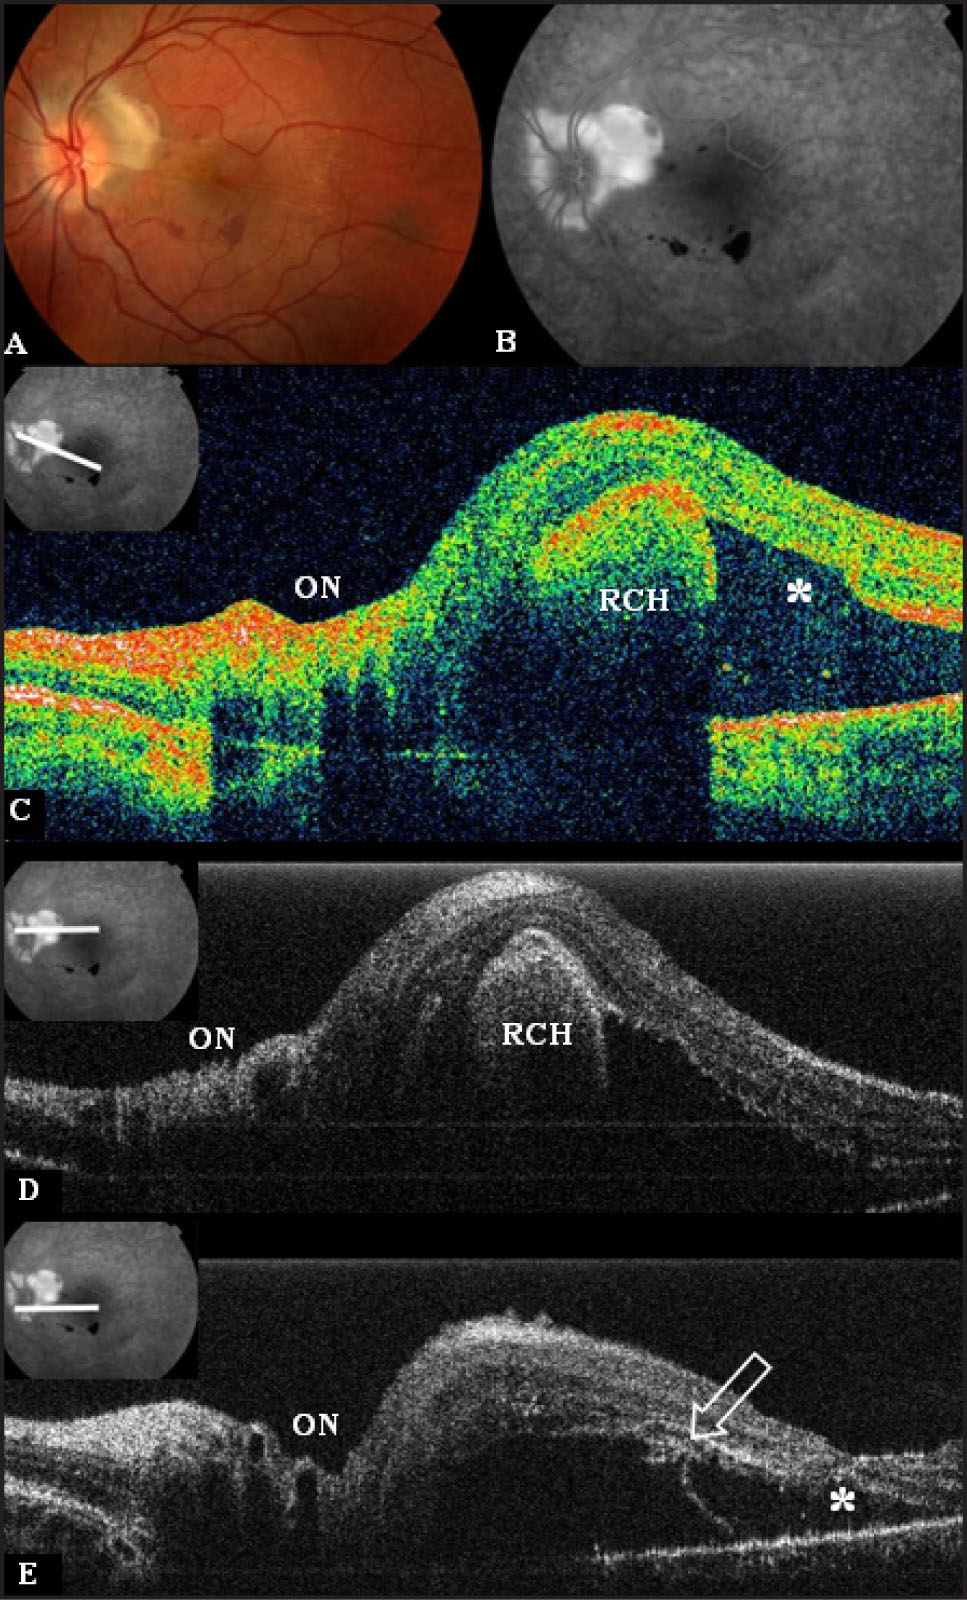 (A) Fundus Photography OD of Case # 2 Showing a Peripapillary Subretinal Mass with Associated Retinal Striae and Hemorrhages, and Serous Macular Detachment. Some Peripapillary Subretinal Gliosis is Seen over the Mass. (B) Fluorescein Angiography Showing Intense Late View Hyperfluorescence of the Mass with Minimal Leakage. (C) Stratus Optical Coherence Tomography (OCT) Image OS Showing the Mass Contiguous with the Outer Retina with Associated Macular Detachment. The Macula Adjacent to the Mass (*) Shows Loss of the Outer Retinal Layers. (D) High Resolution Fourier-Domain OCT Image OS Showing a Peripapillary Round Mass Bulging from the Outer Retina into the Subretinal Space with Intense Shadowing. (E) High Resolution Fourier-Domain OCT Image of the Left Macula (*) Adjacent to the Mass Showing Severe Disruption of the Photoreceptor Layer which Appears Partially Ripped from the Overlying Detached Macula (arrow). The High Resolution Fourier-Domain OCT Instrument Used was Developed at the University of California Davis and Provides Axial Resolution of 4.5 μm and Transverse Resolution 10 to 15 μm.2 ON—Optic Nerve; RCH—Retinal Capillary Hemangioma